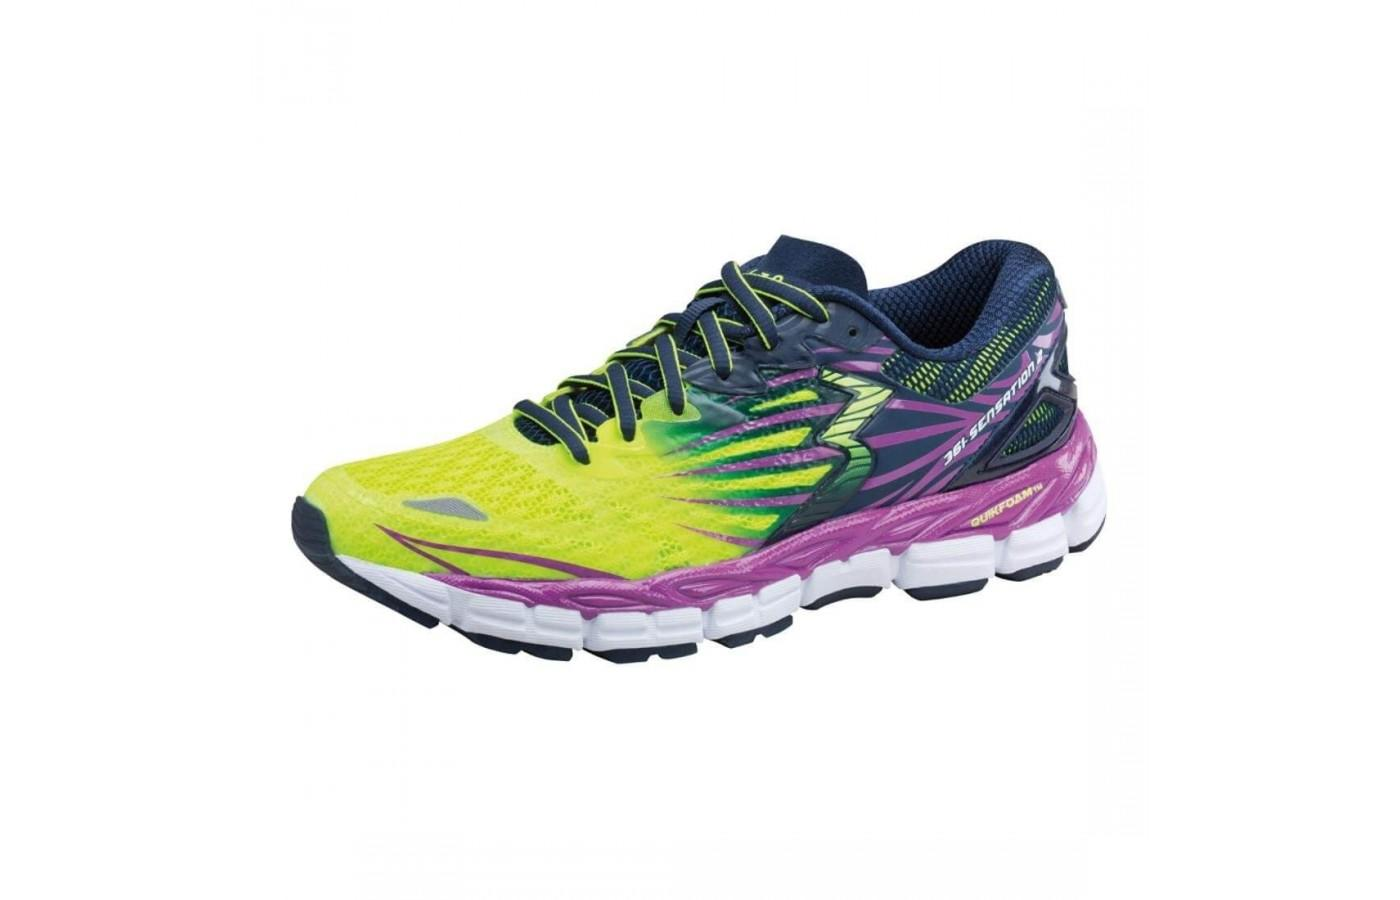 The 361 Sensation two comes in bright colors and an athletic style